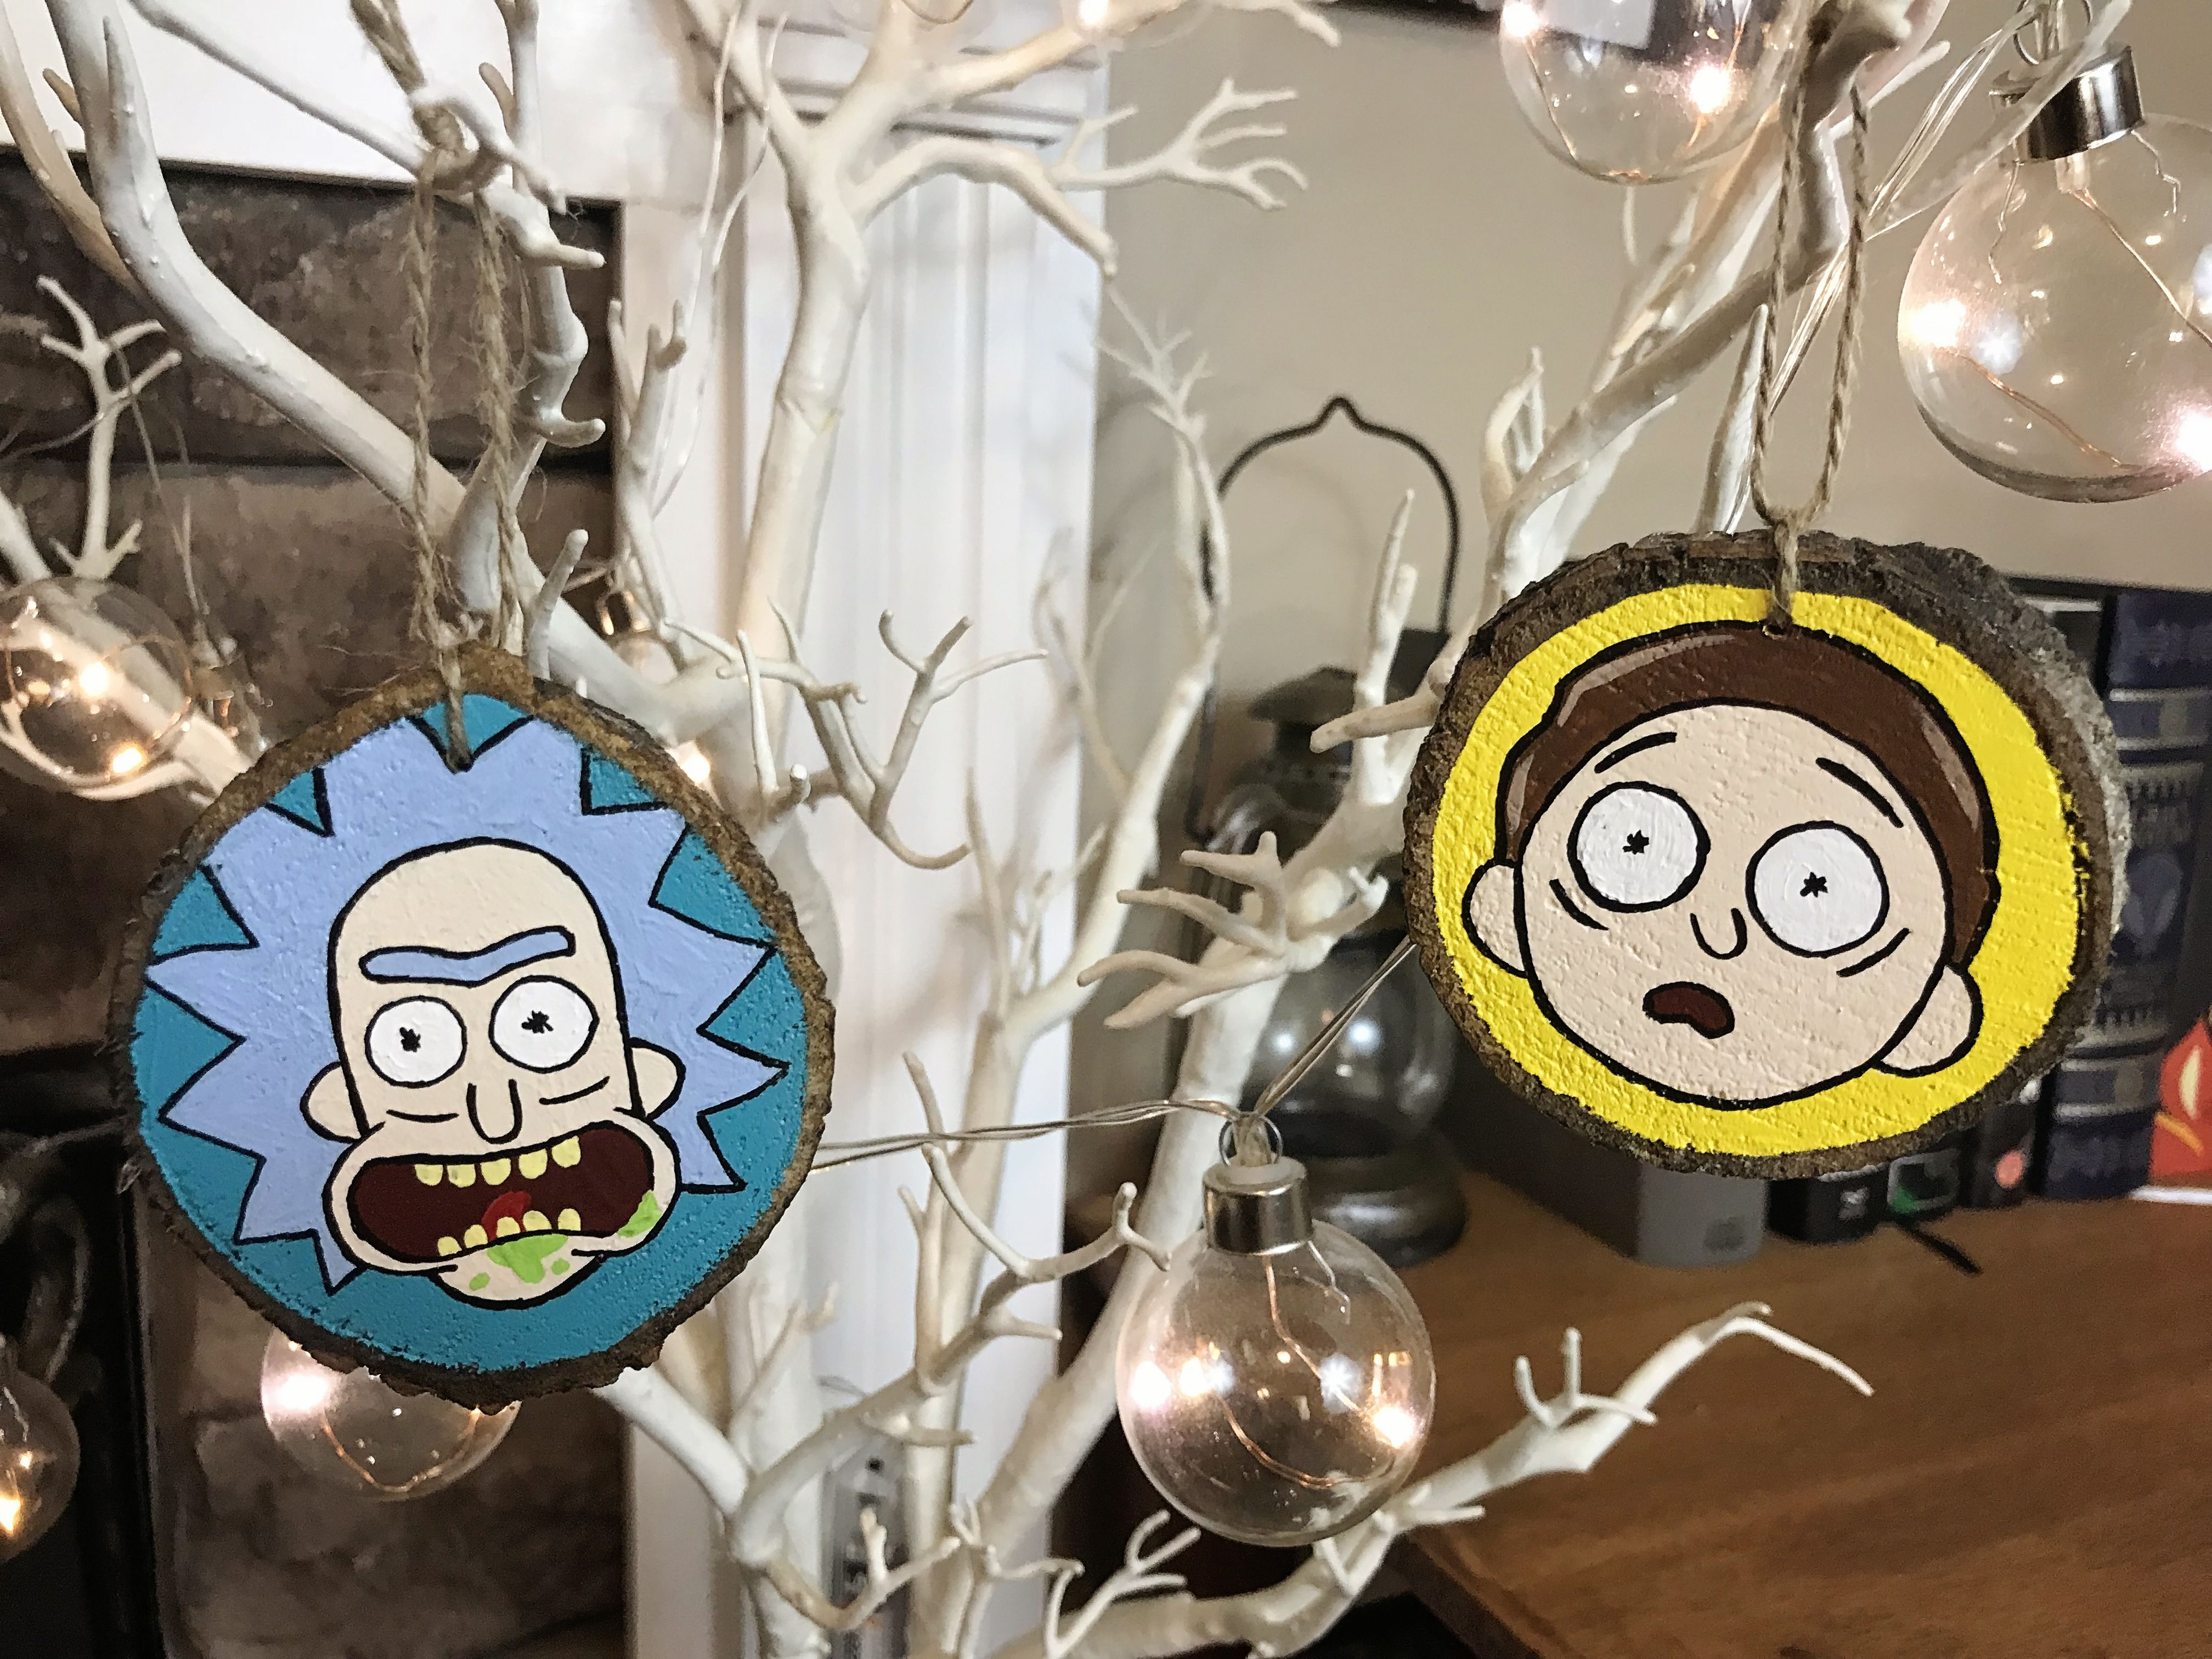 Rick And Morty Christmas Ornaments.Rick Morty Ornaments Set Of 2 Painted Ornaments